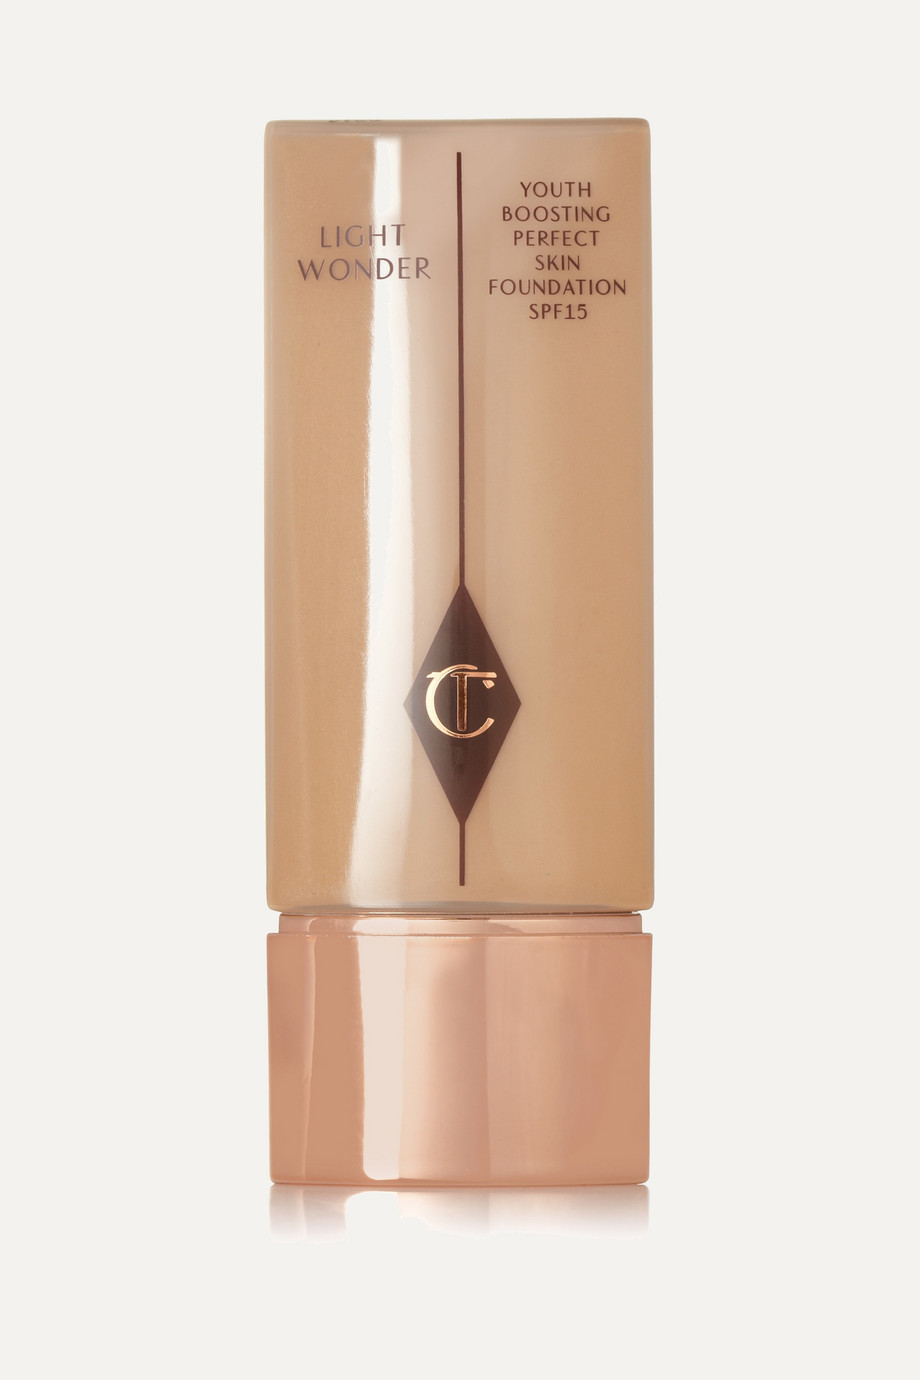 Charlotte Tilbury Light Wonder Youth-Boosting Foundation LSF 15 – 6 Medium, 40 ml – Foundation